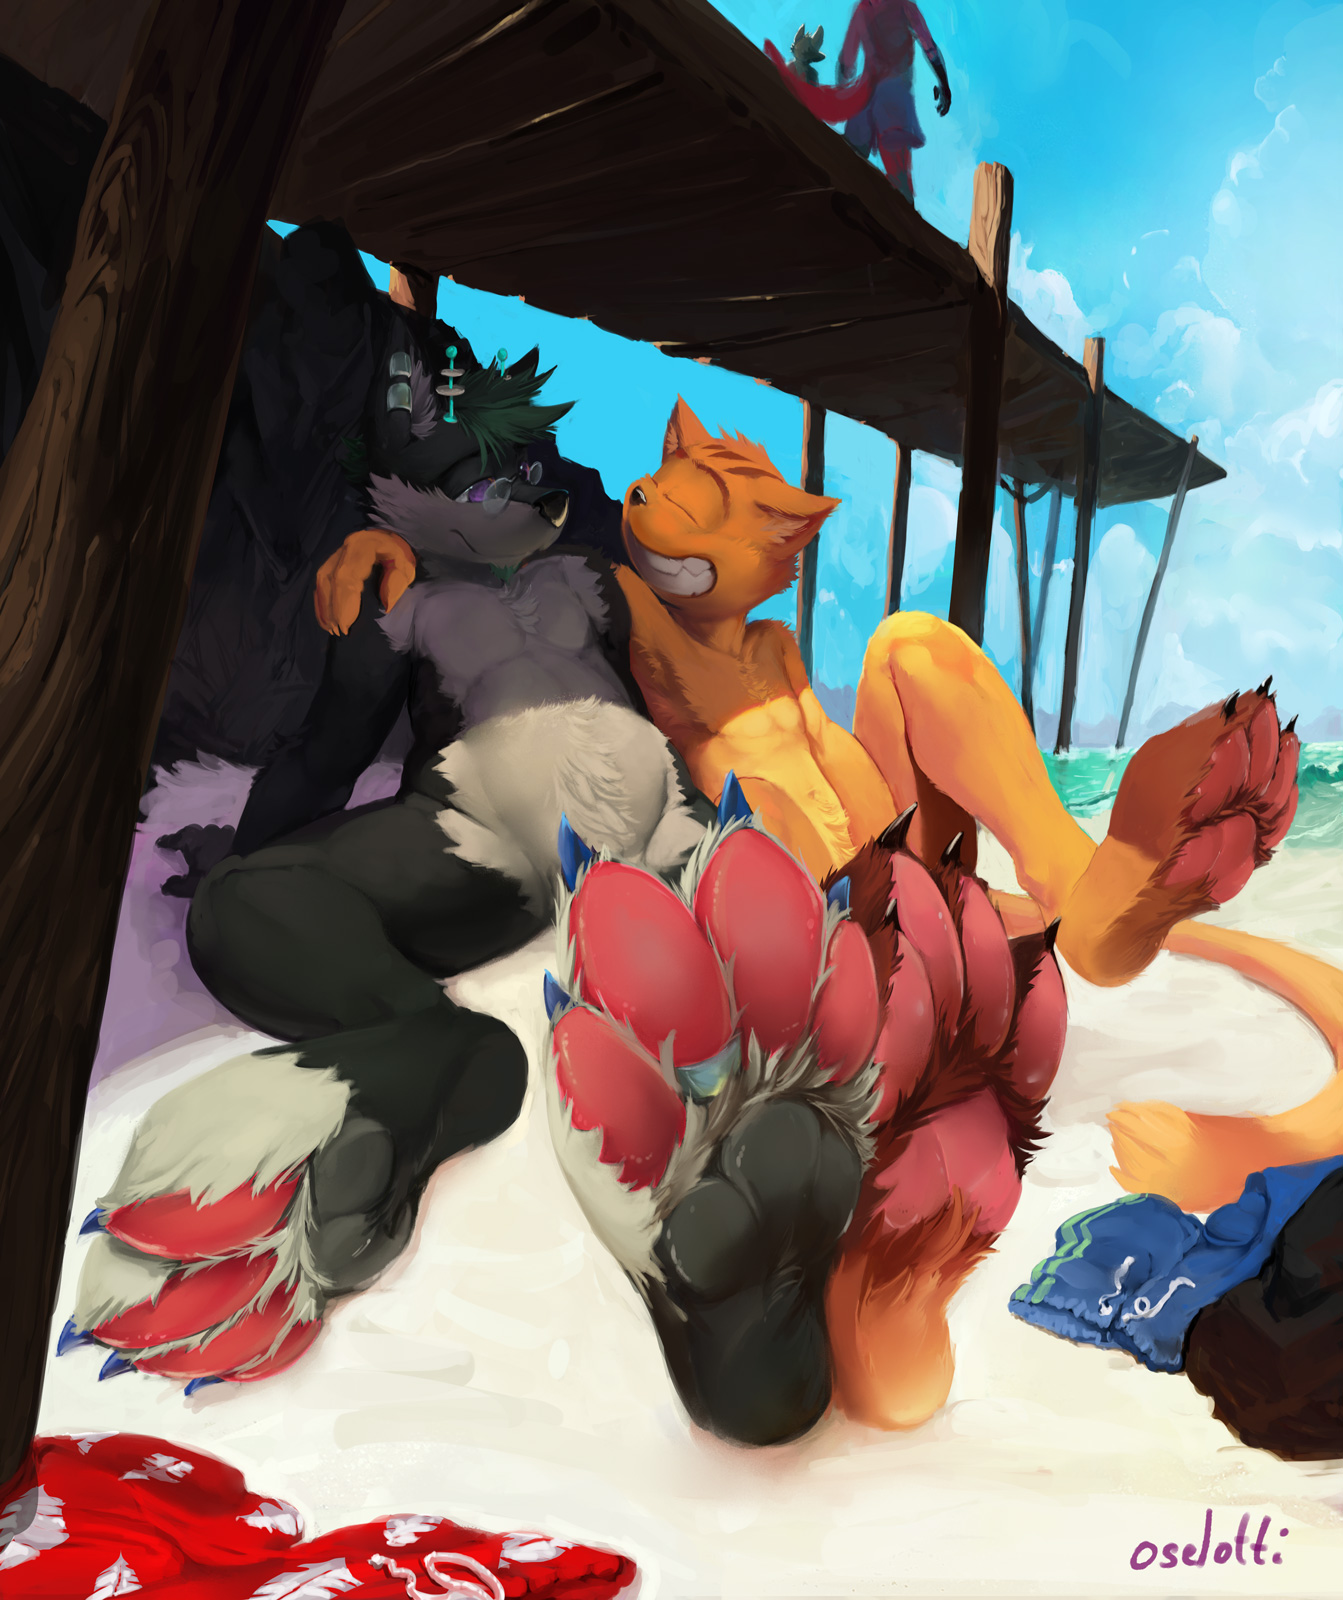 1453855783.oselotti_paws-in-the-beach-by-oselotti